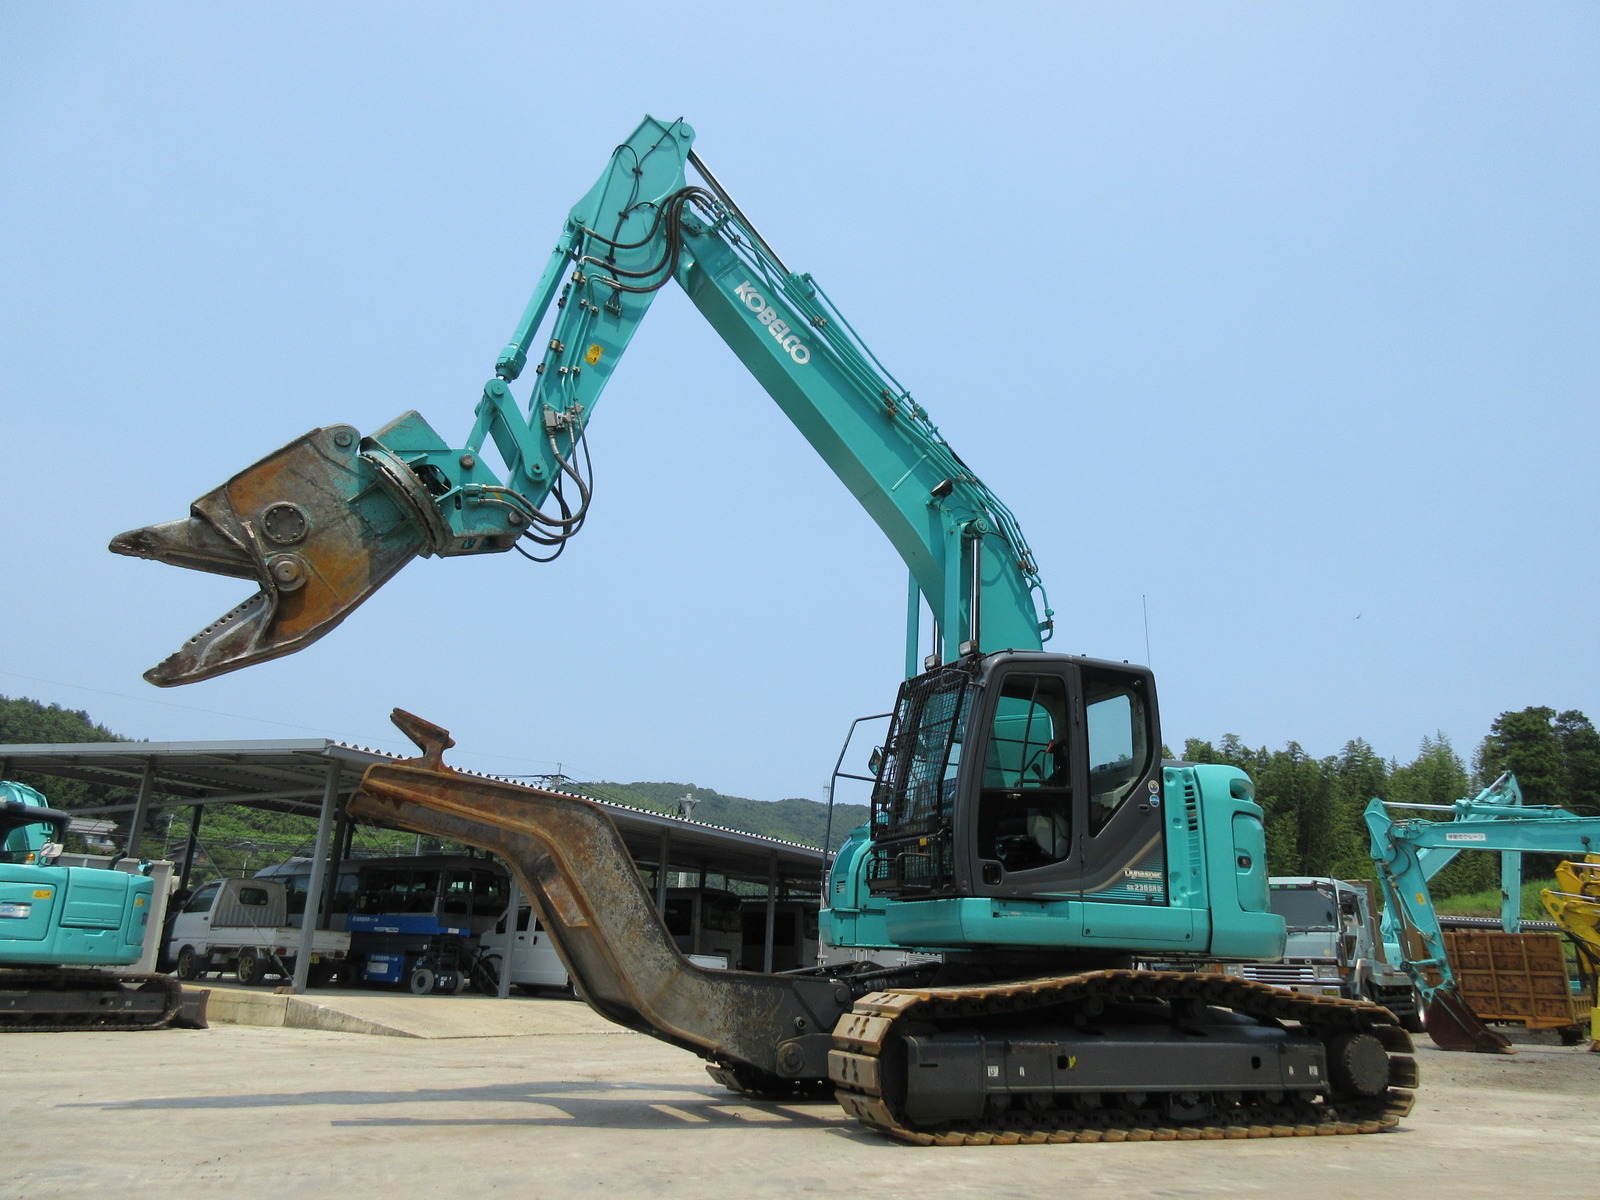 Used Construction Machine used Excavator KOBELCO SK235SRD-3 Photos